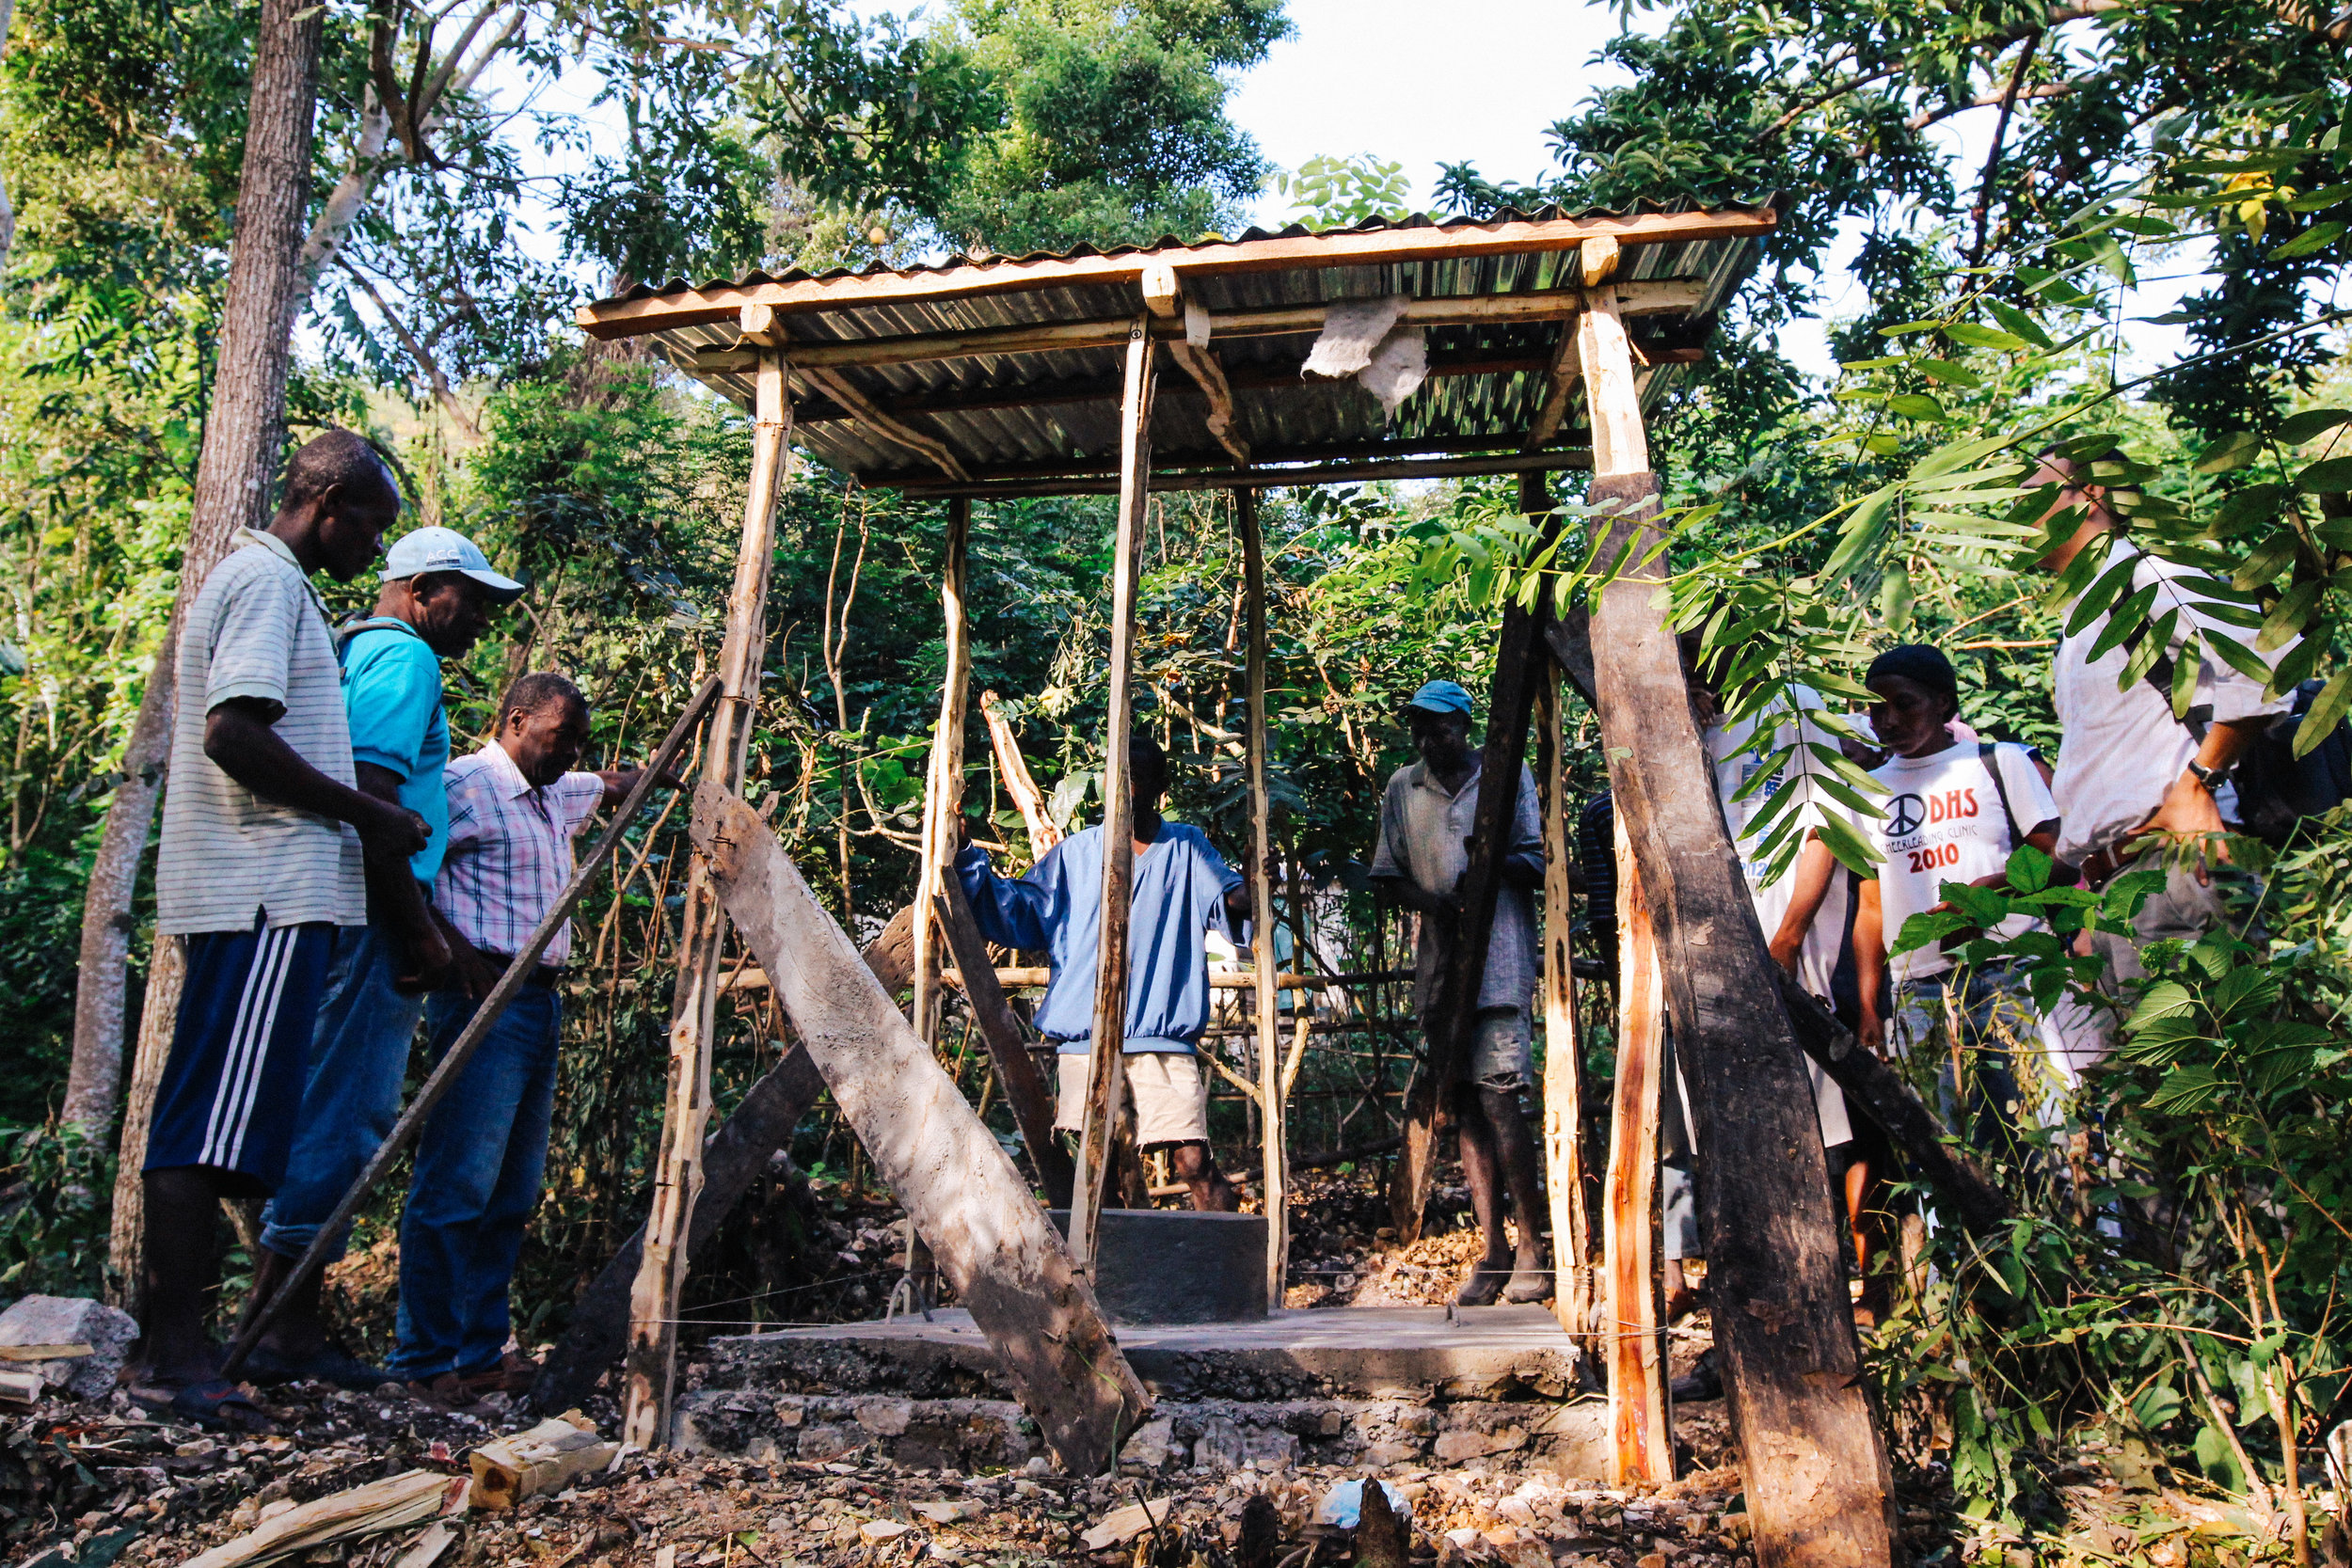 The first latrine in the community is nearing completion.